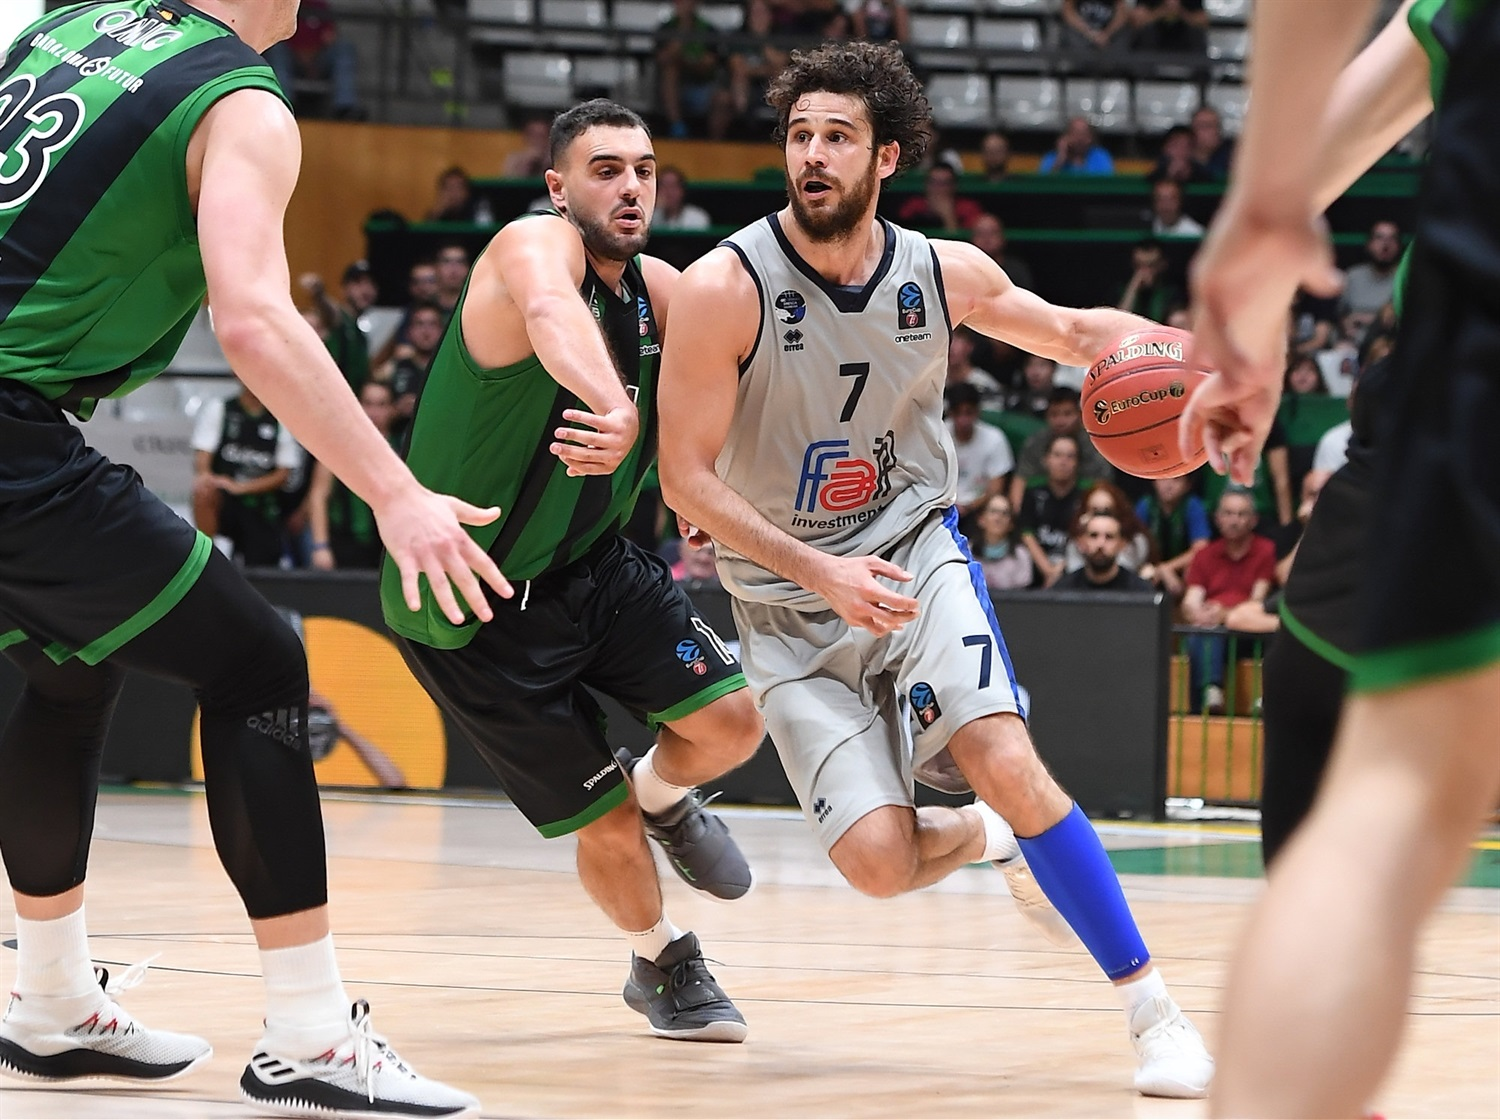 Luca Vitali - Germani Brescia Leonessa (photo David Grau - Joventut) - EC19